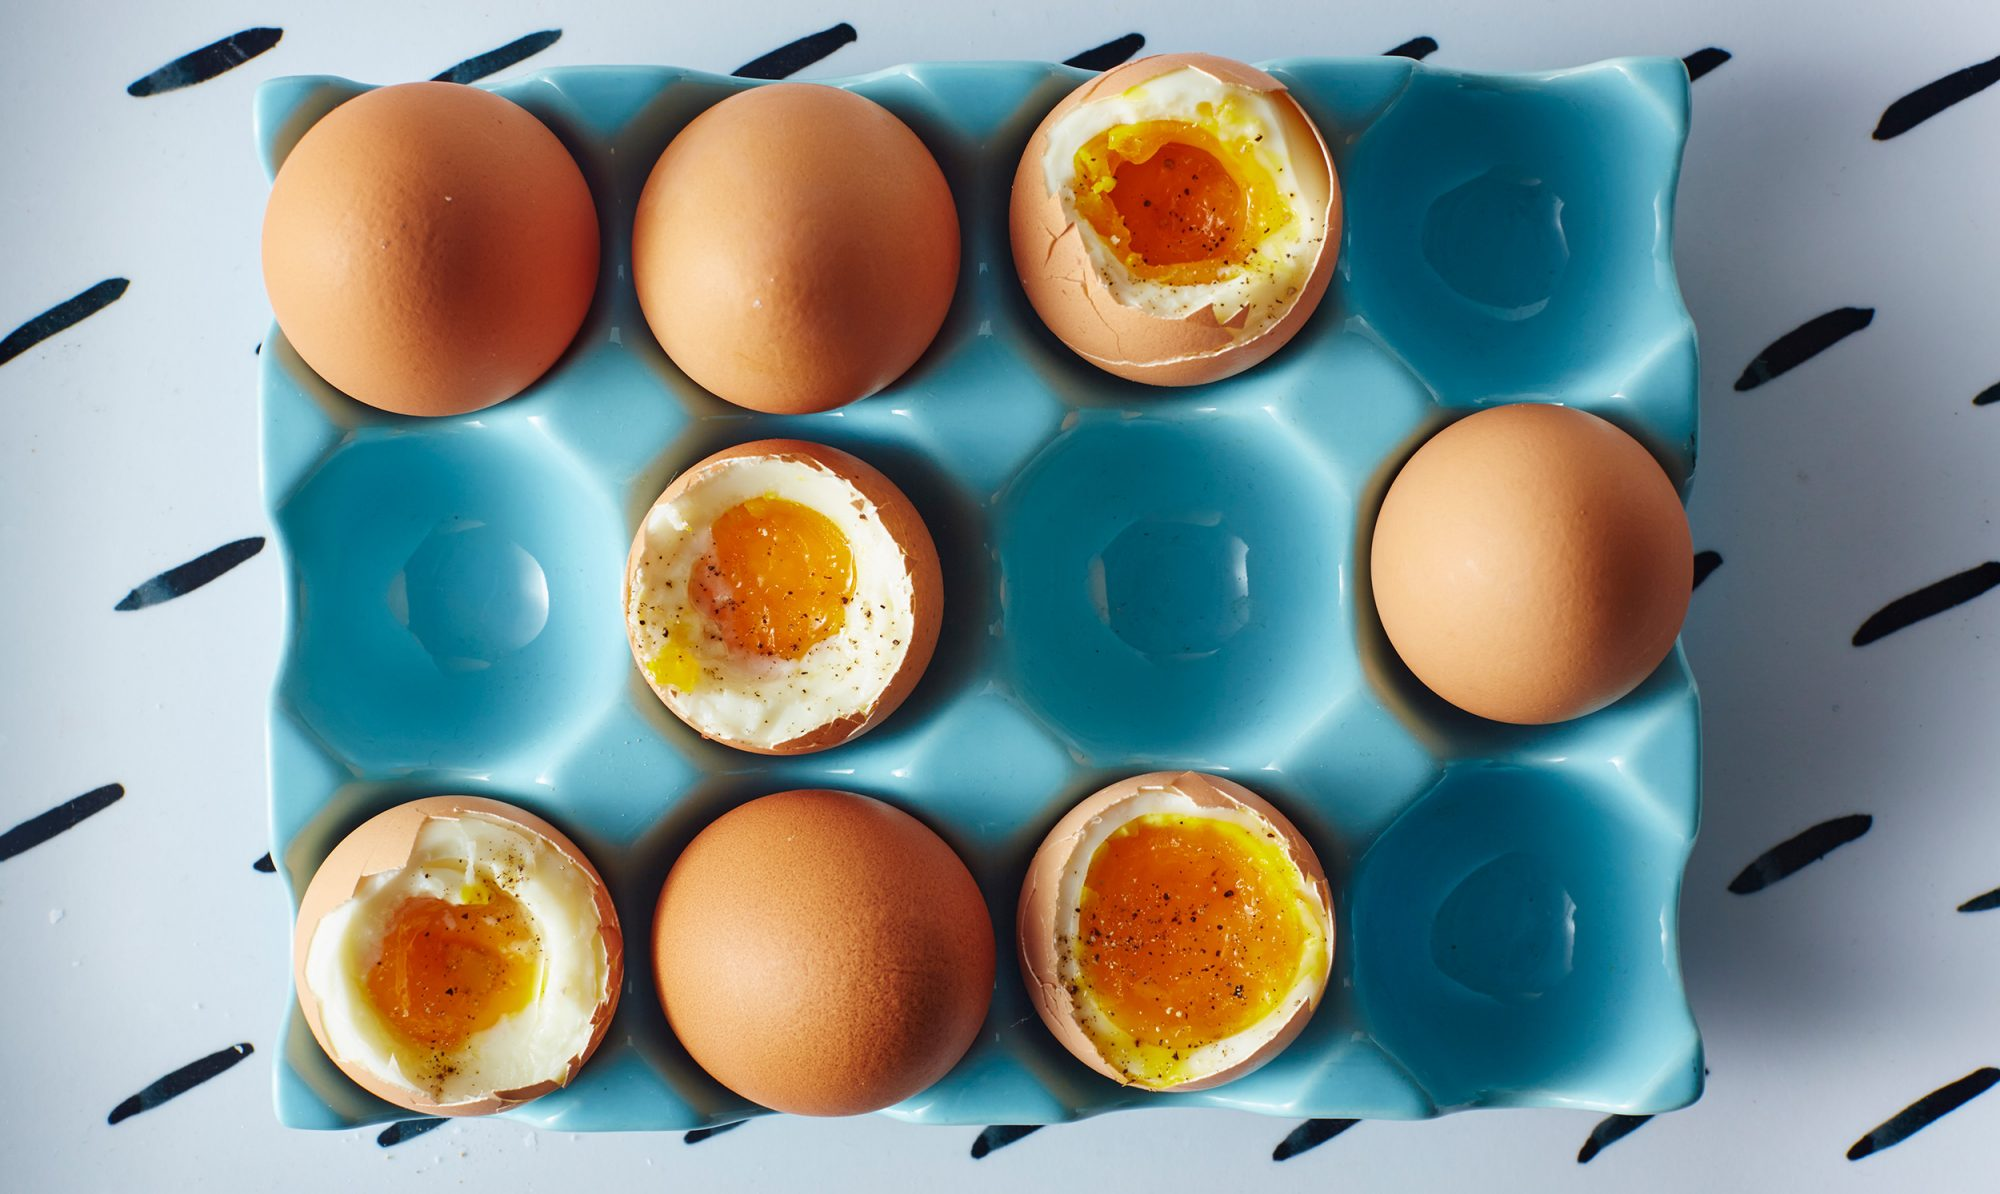 EC: What's the Best Way to Open a Soft-Boiled Egg?